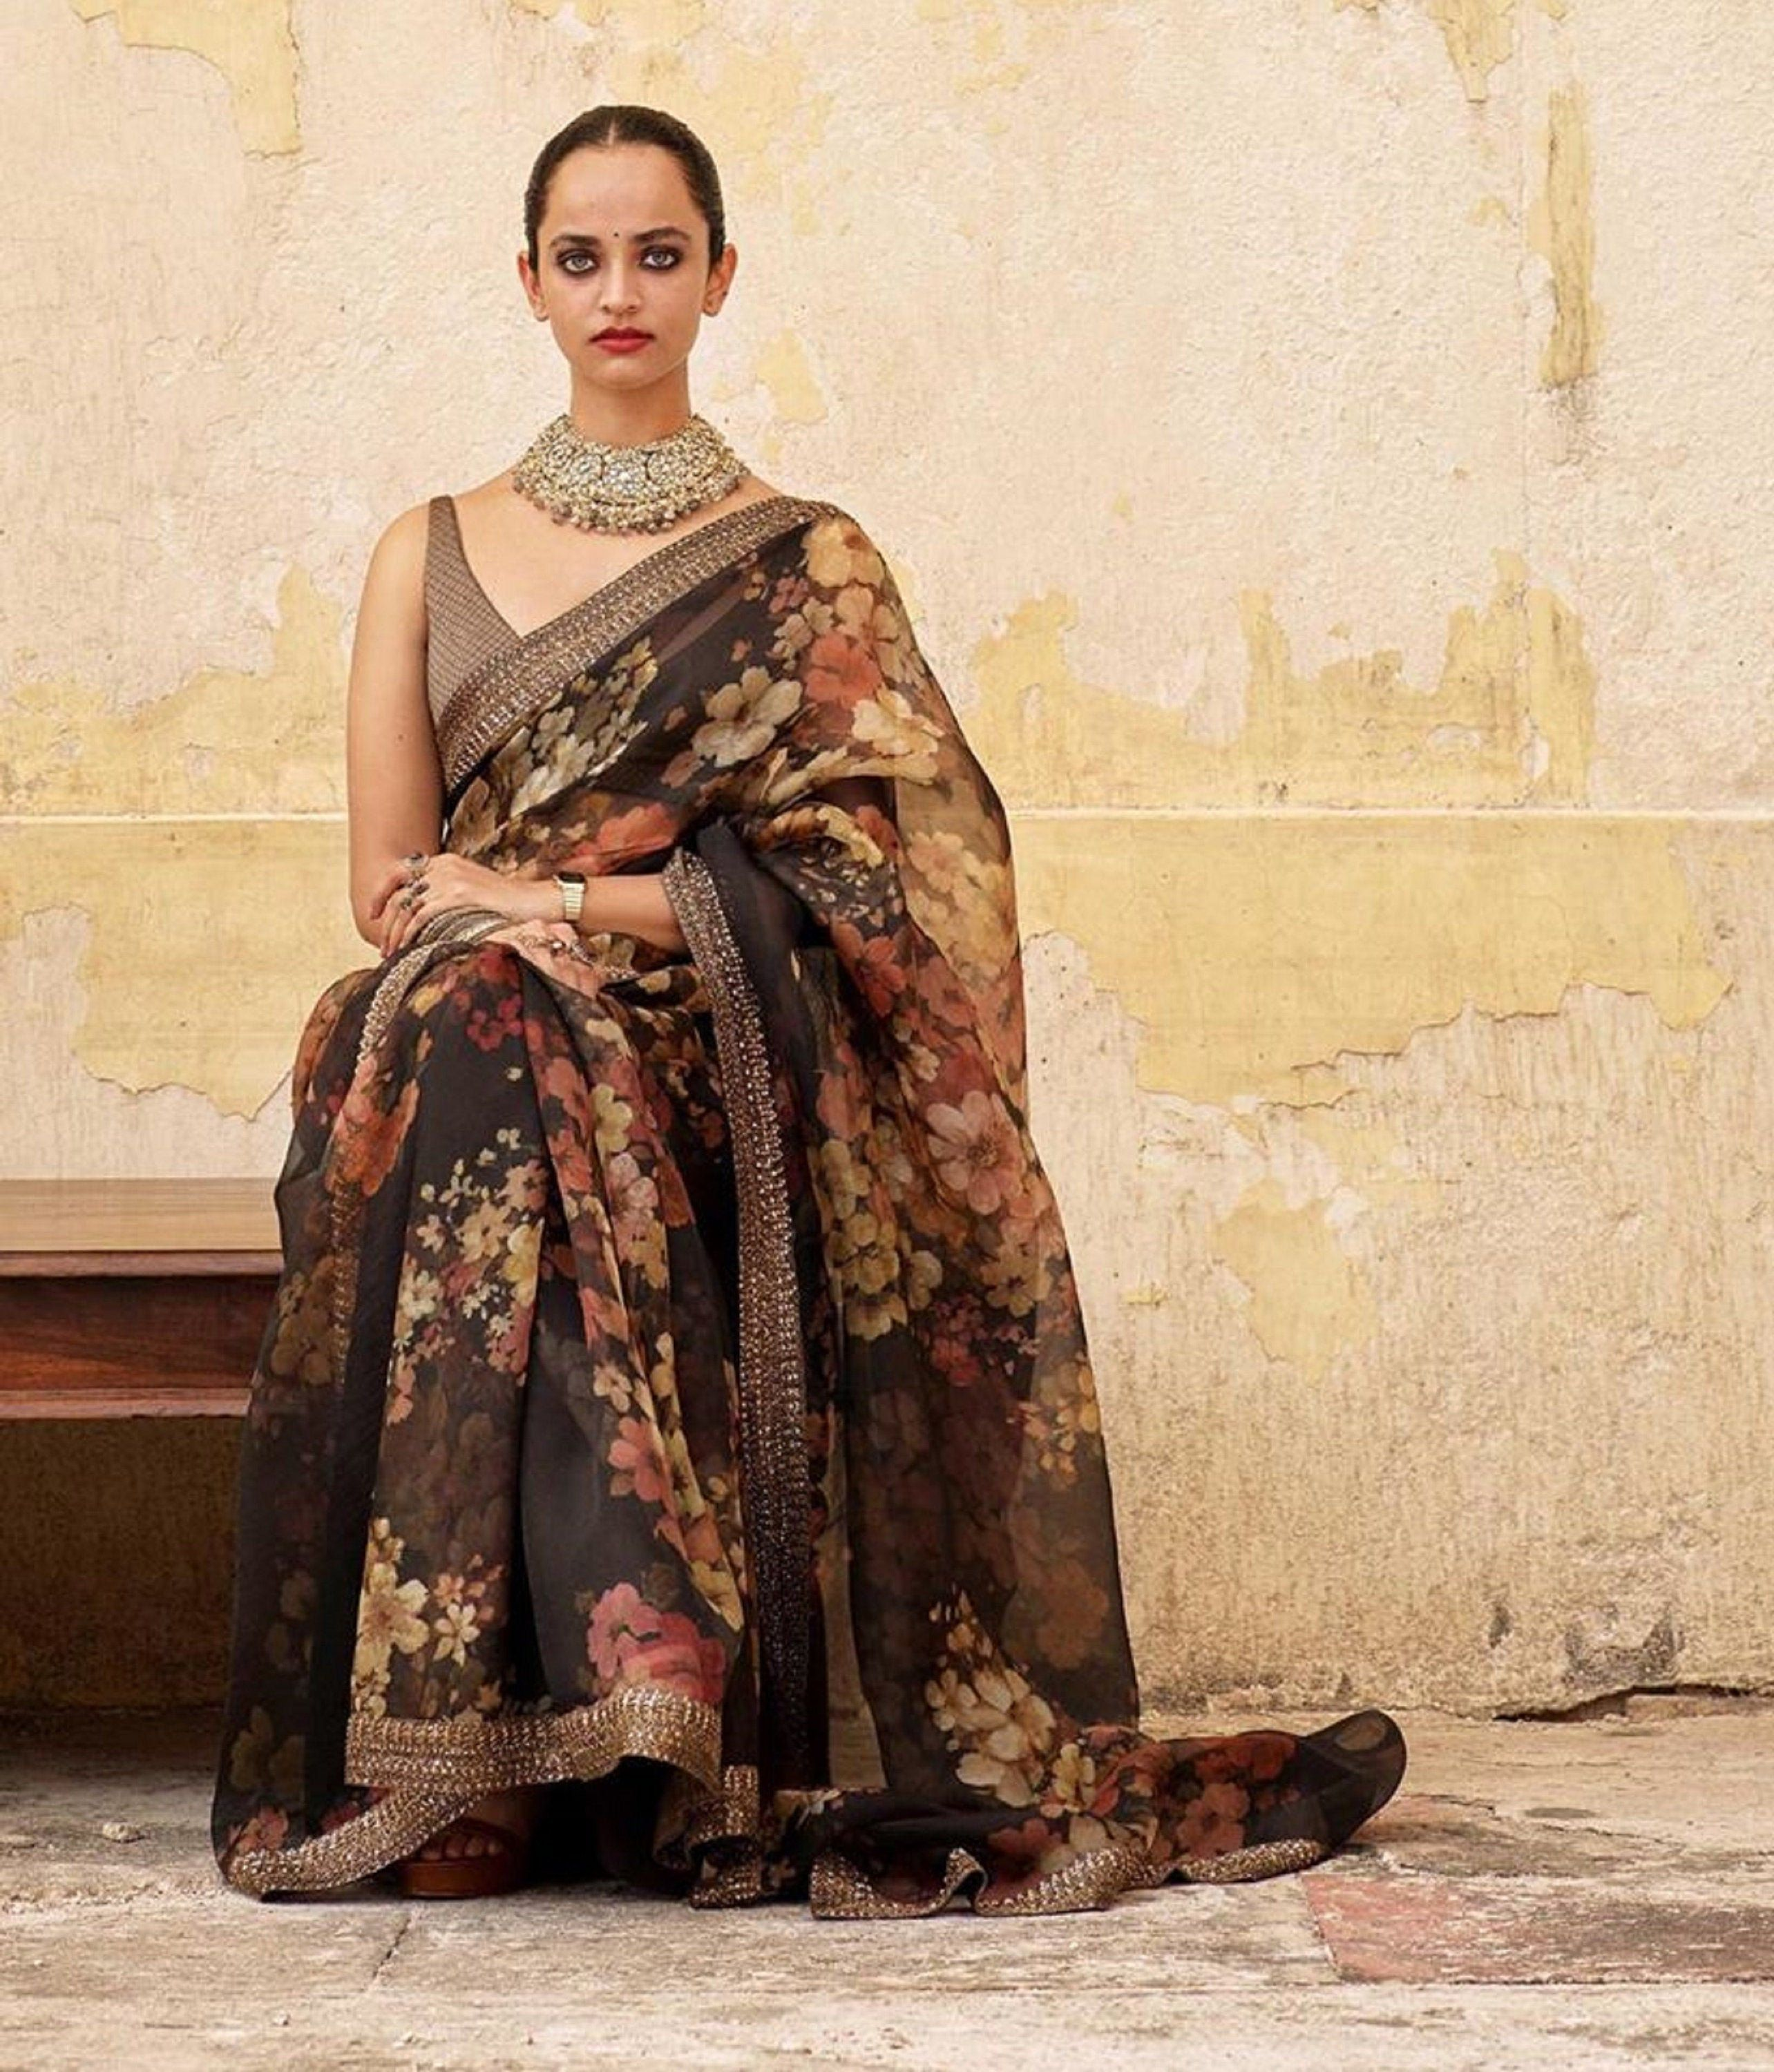 Womens Black Color New Fashion Saree With Stitched Blouse Beautiful Looking Saree Fancy Floral Printed Saree Ex In 2020 New Fashion Saree Sabyasachi Saree Collection